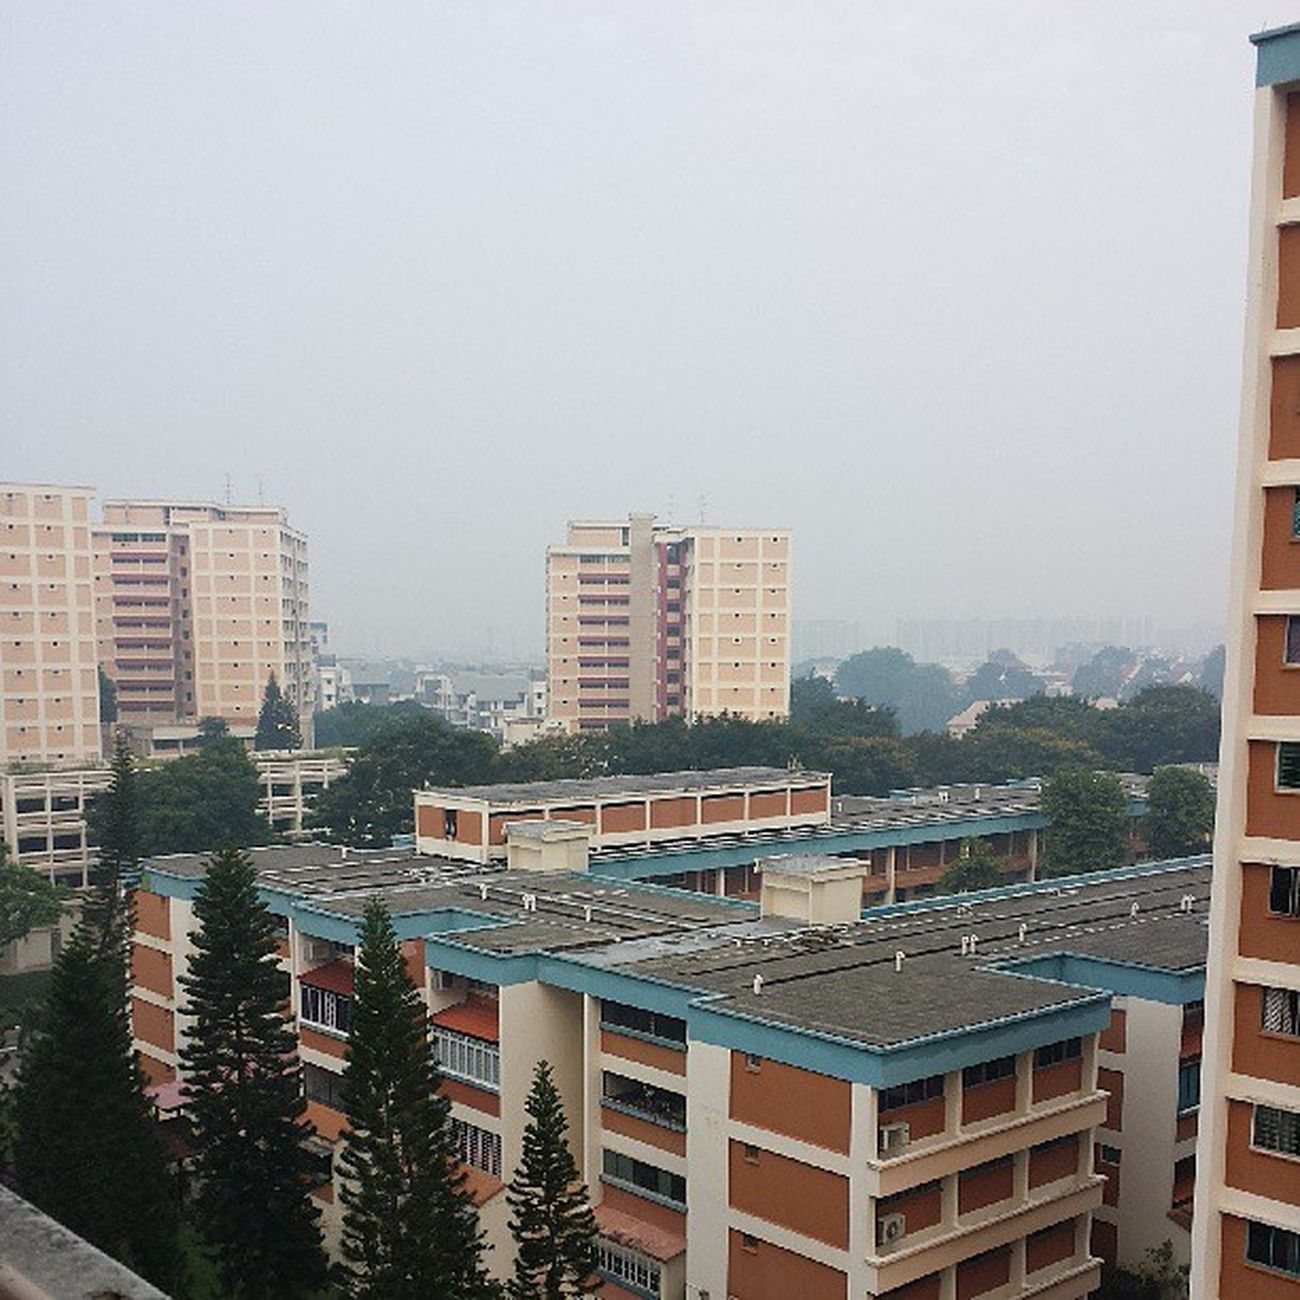 Jialat leh this Haze .